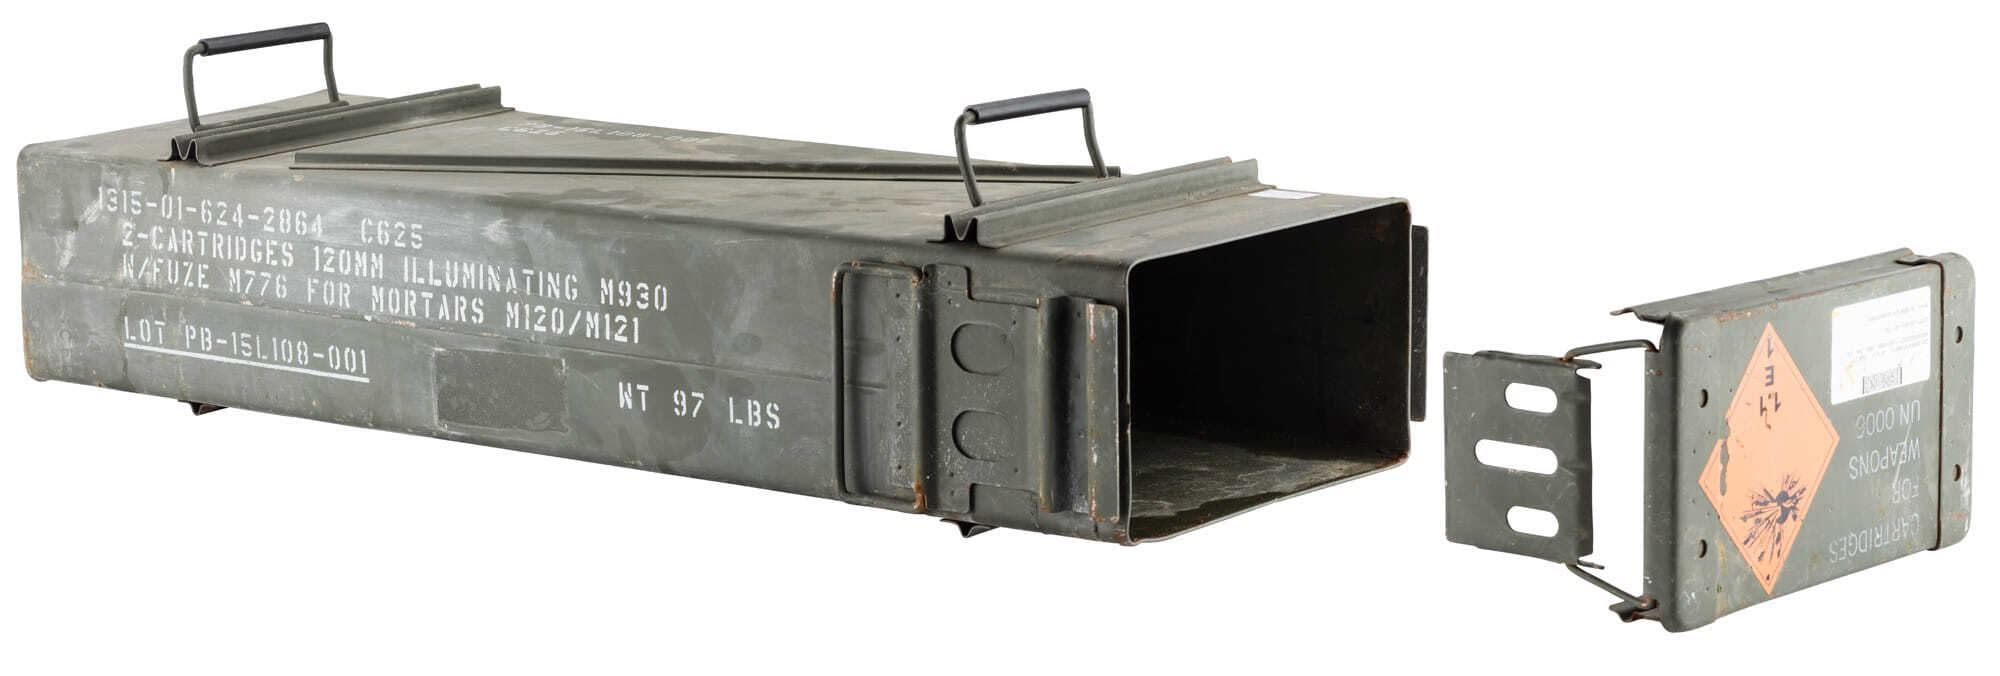 A60446-2 US 120mm used metal ammo box - A60446